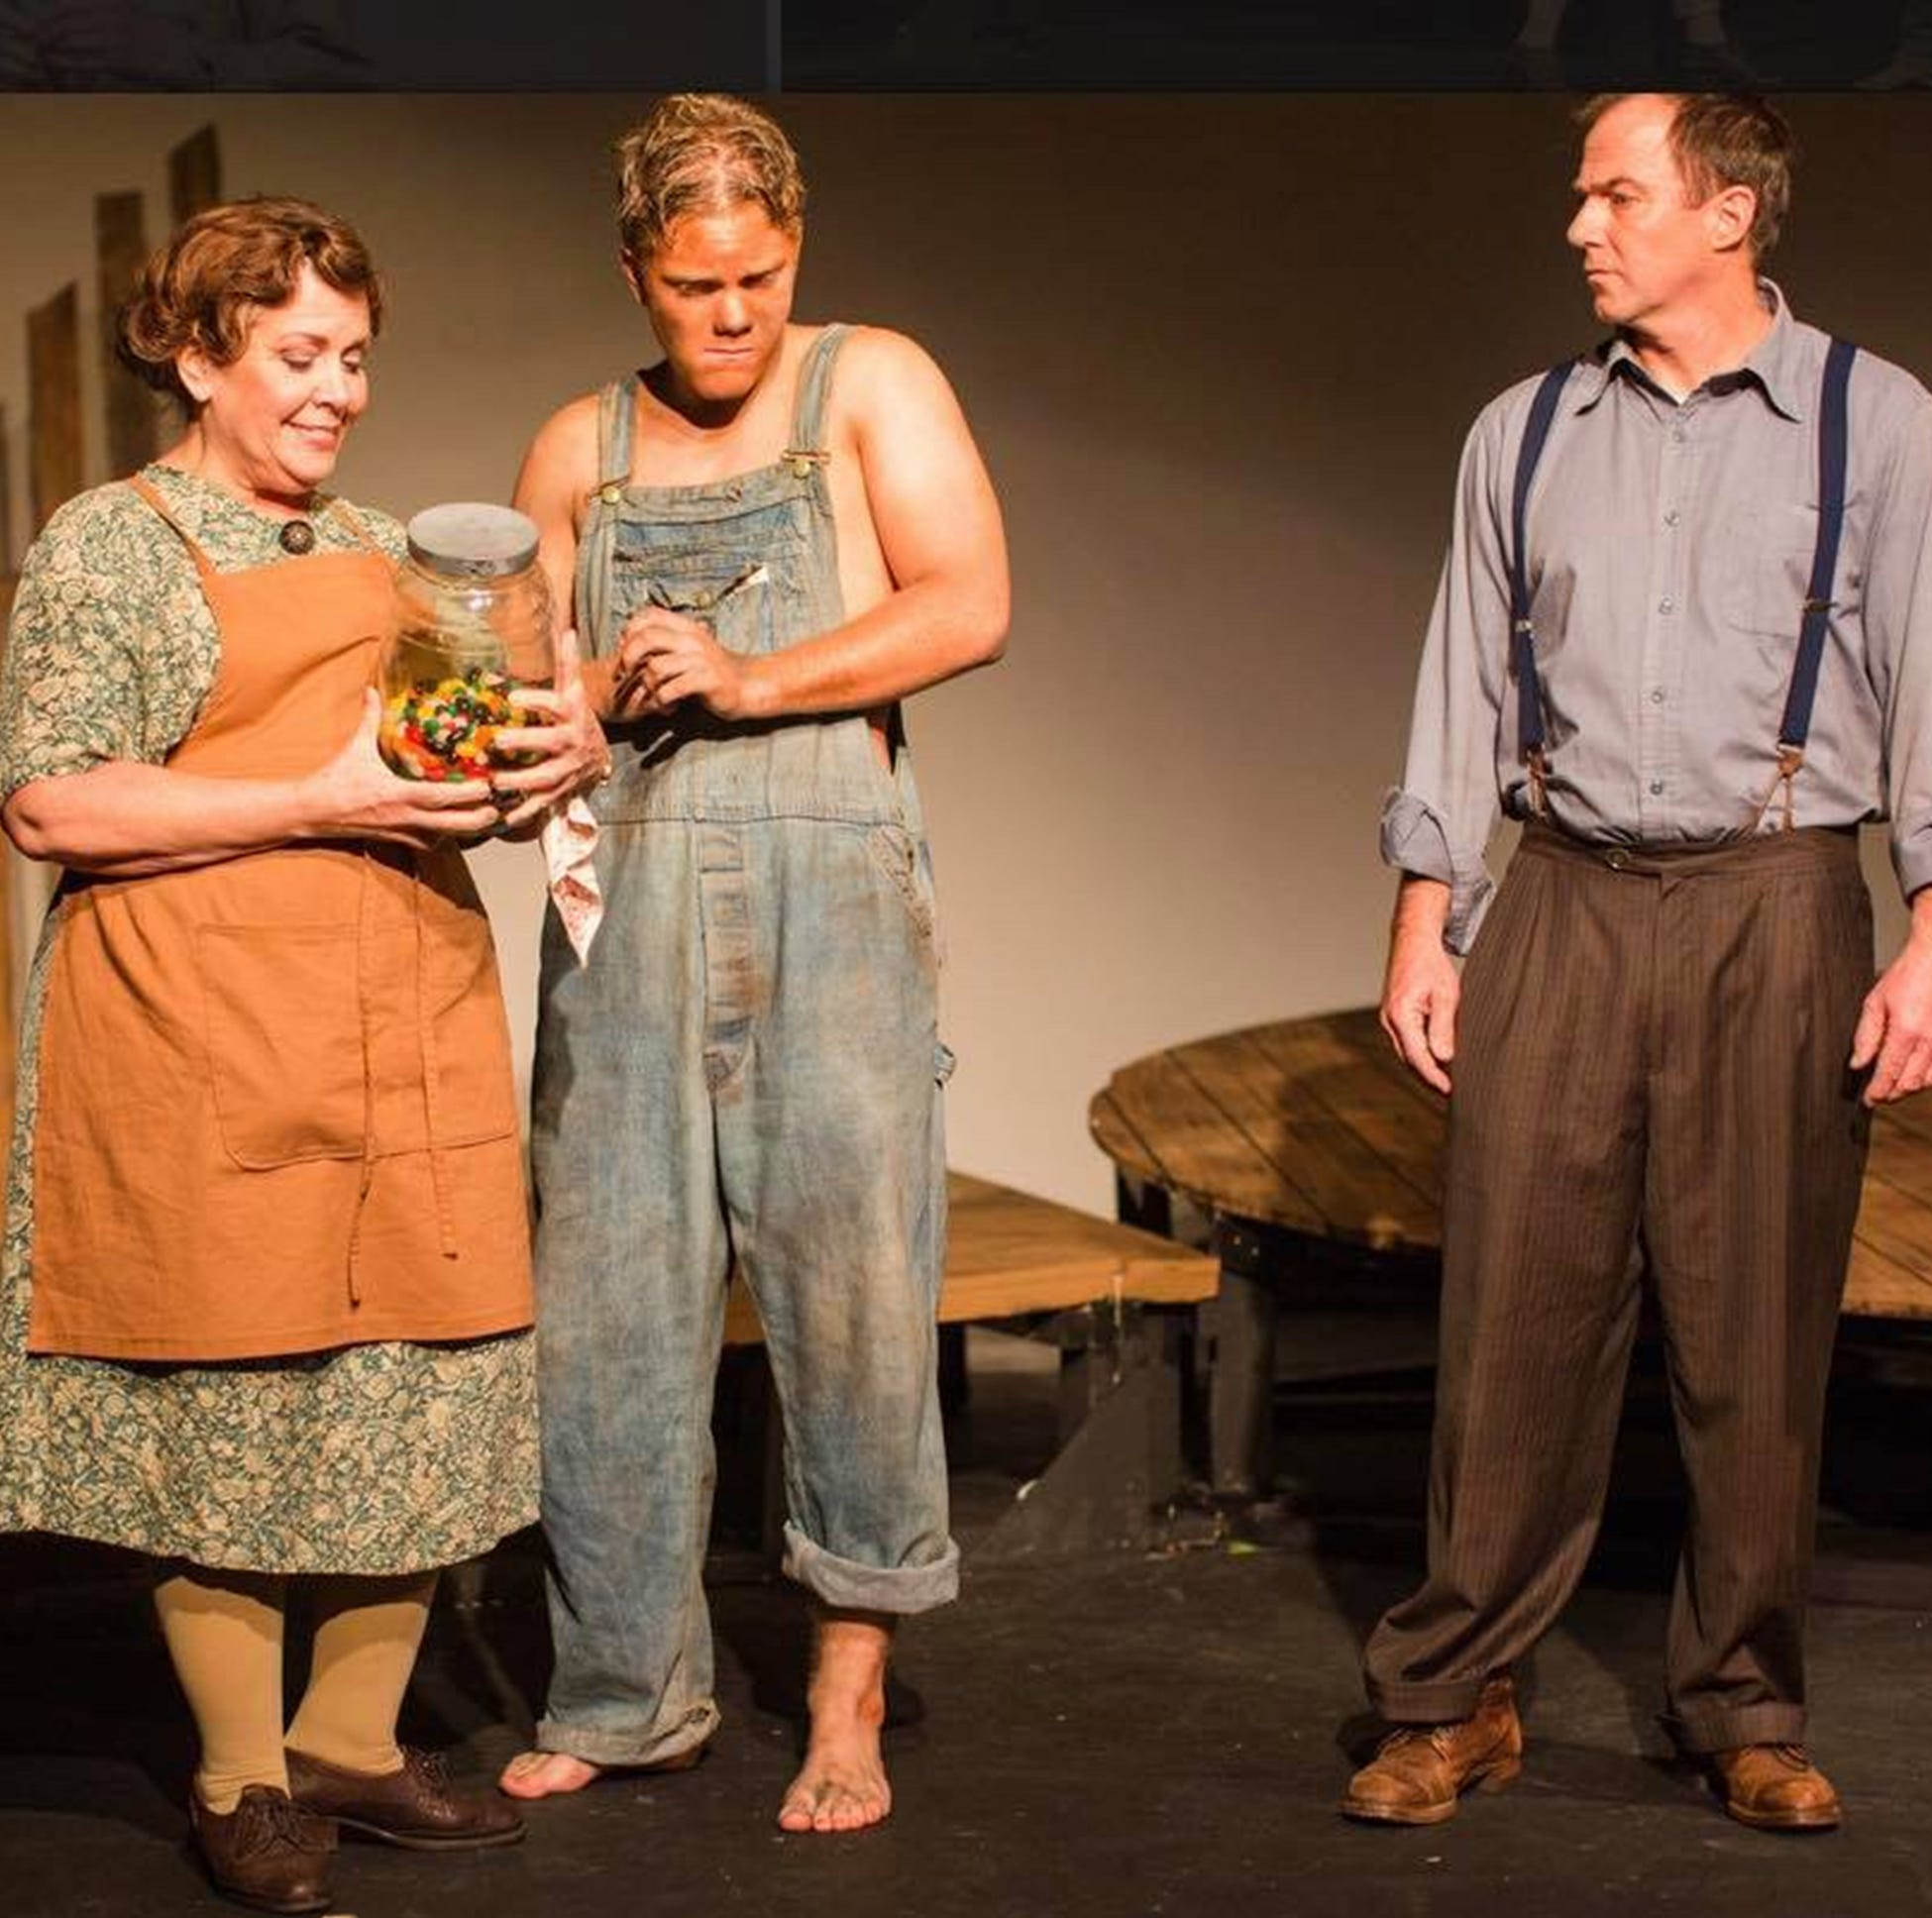 Taking show on the road: Wetumpka Depot Players' Diviners at National Theatre Festival